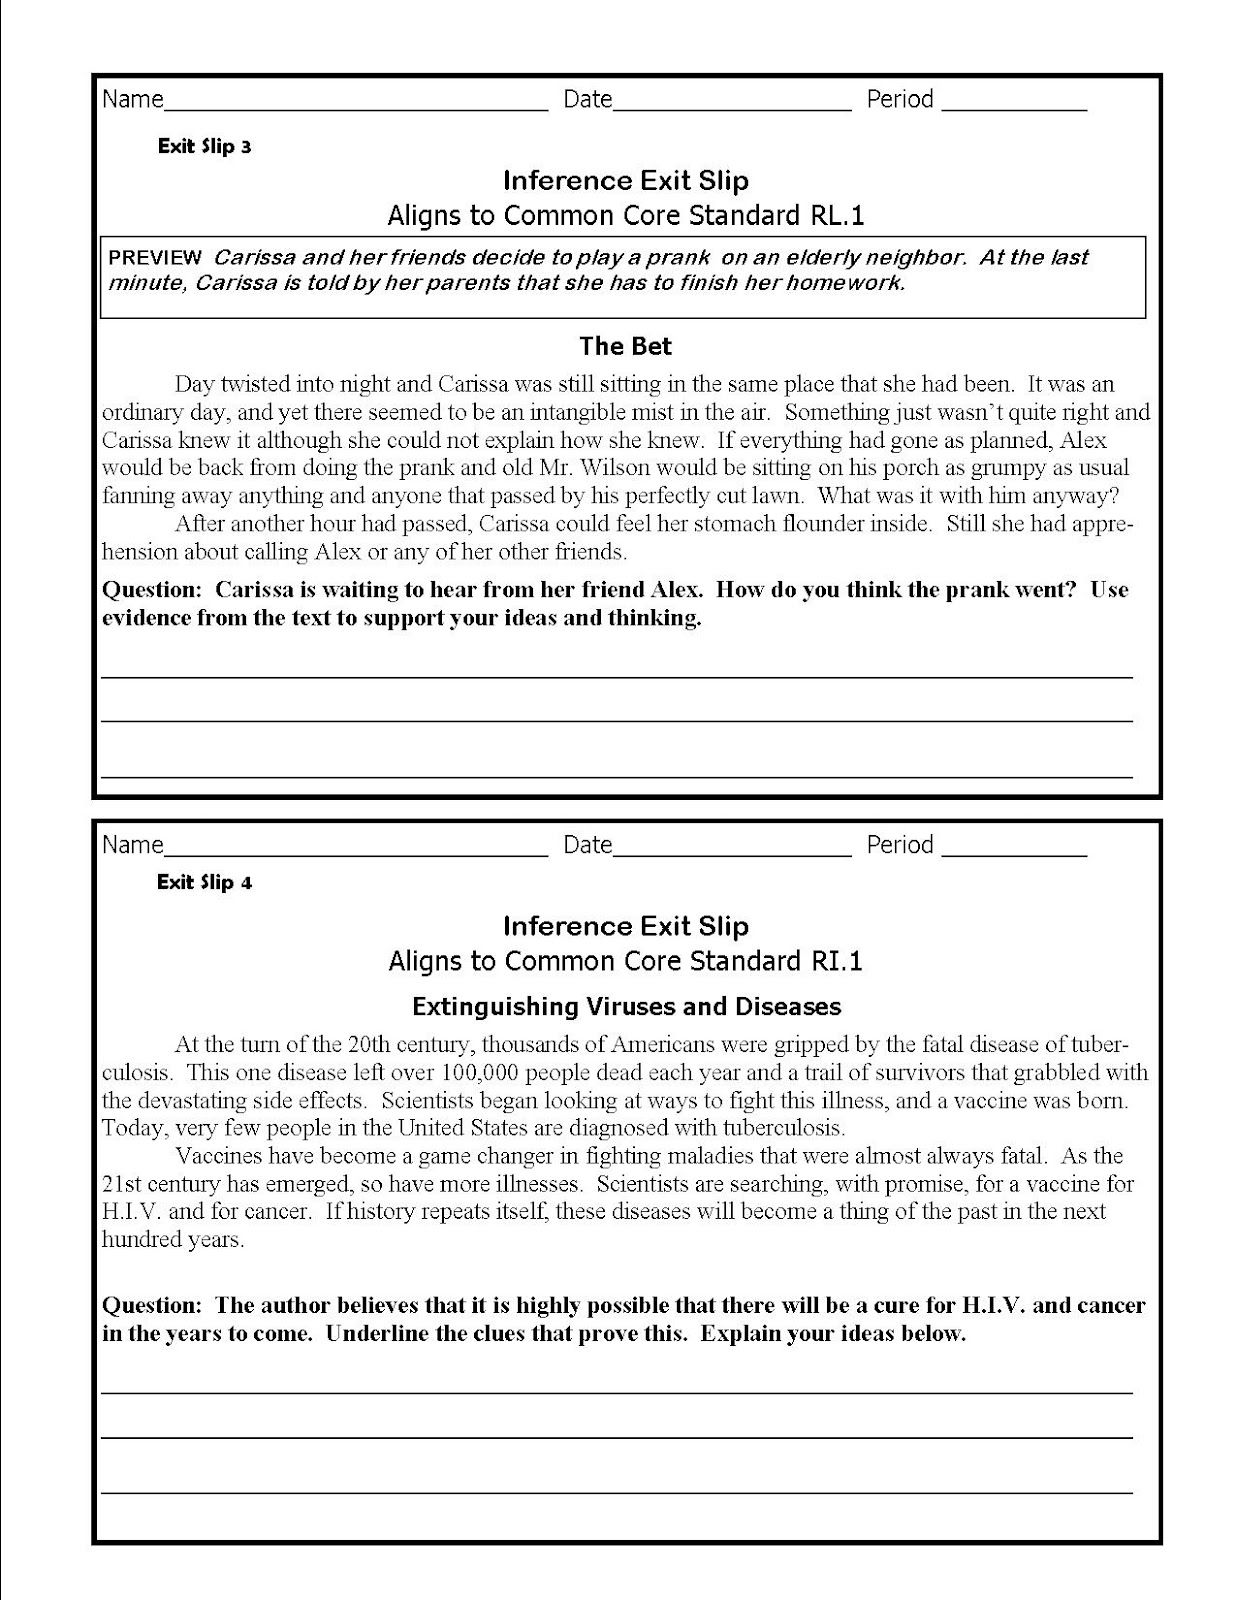 The Lesson Cloud Middle School Common Core Inference Exit Slips